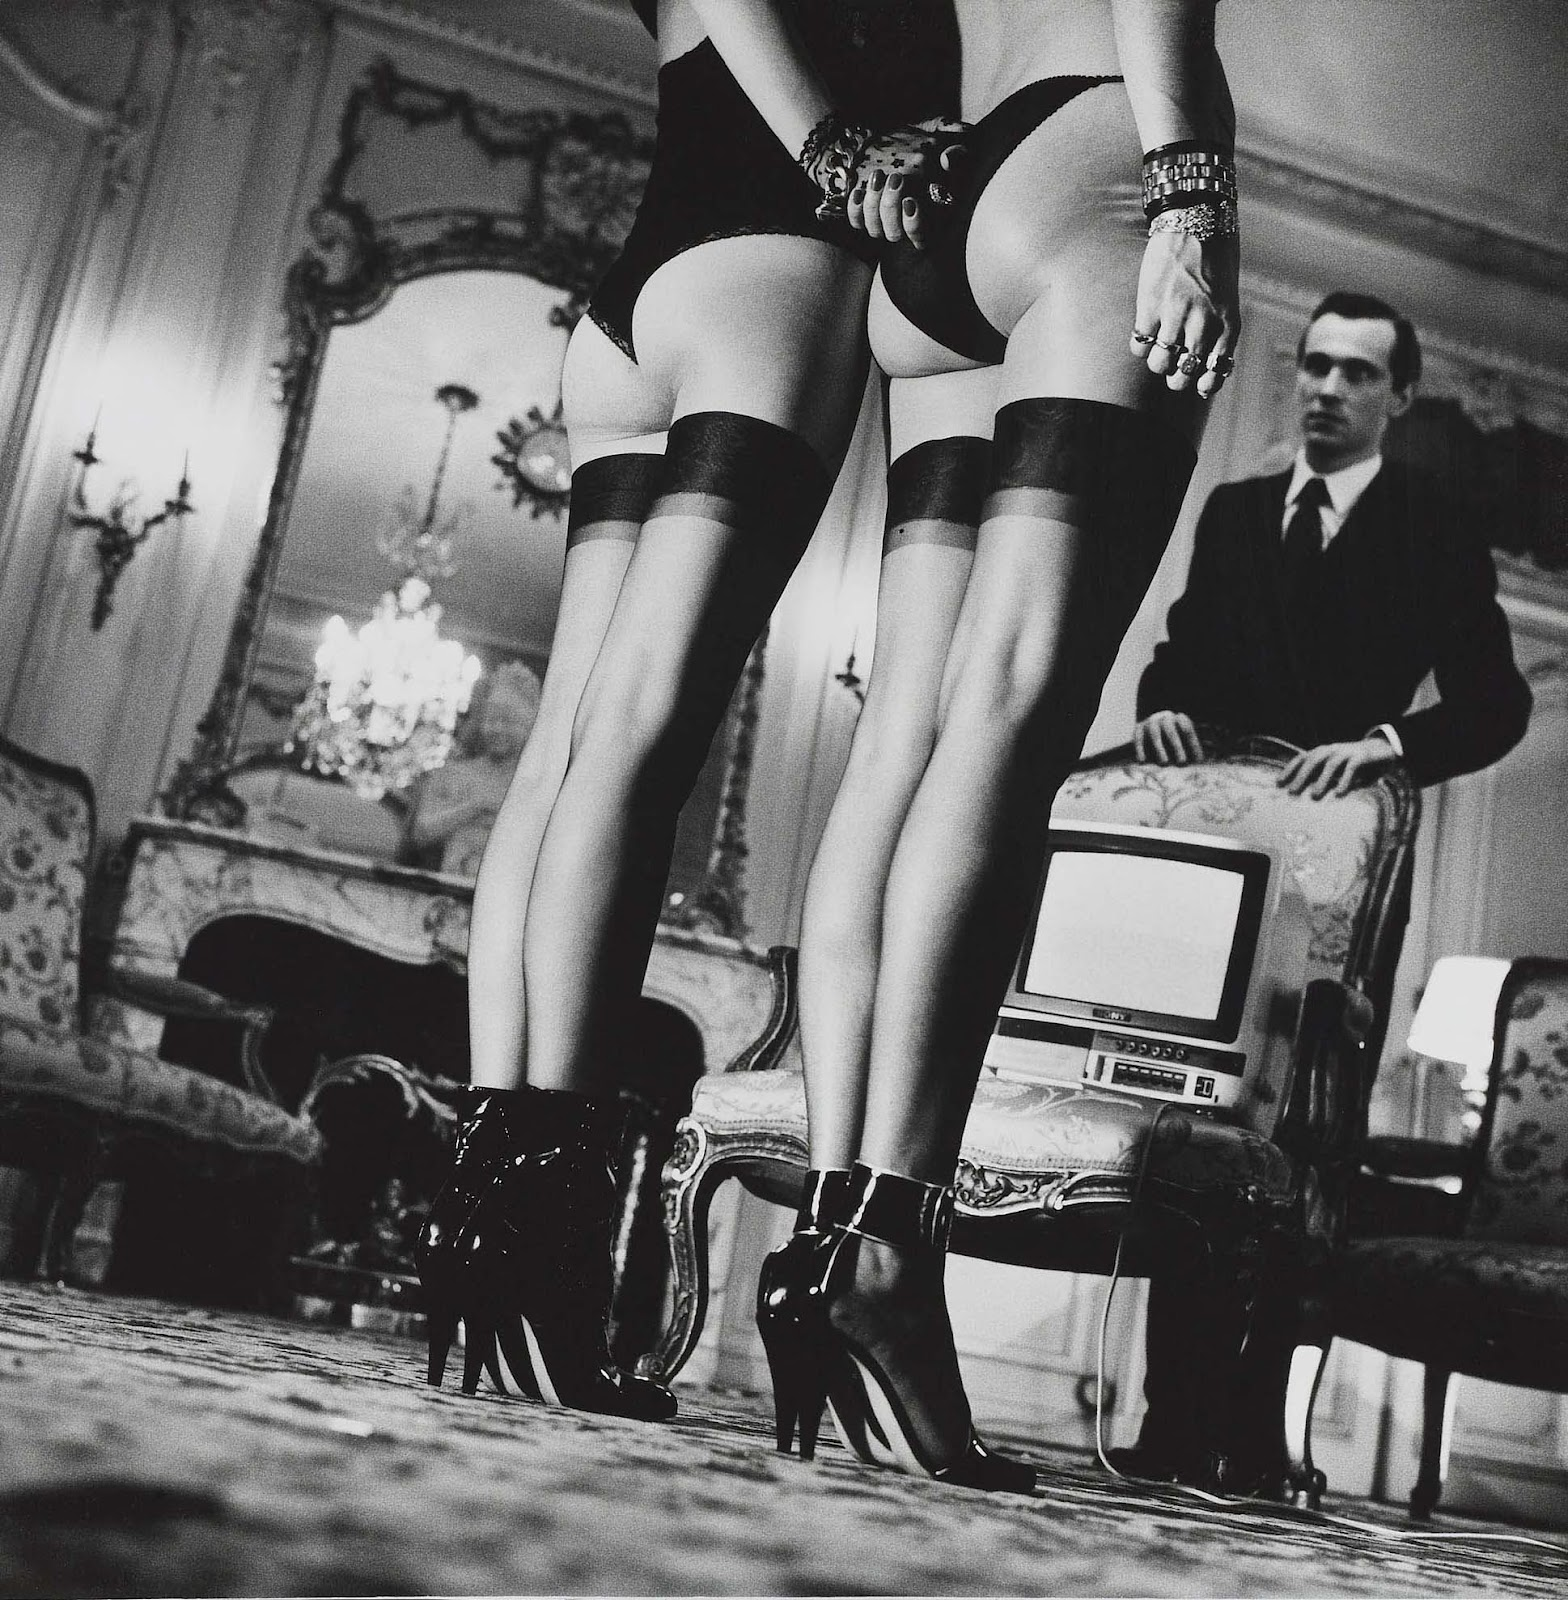 Two Pairs of Legs in Black Stockings (1979) by Helmut Newton.